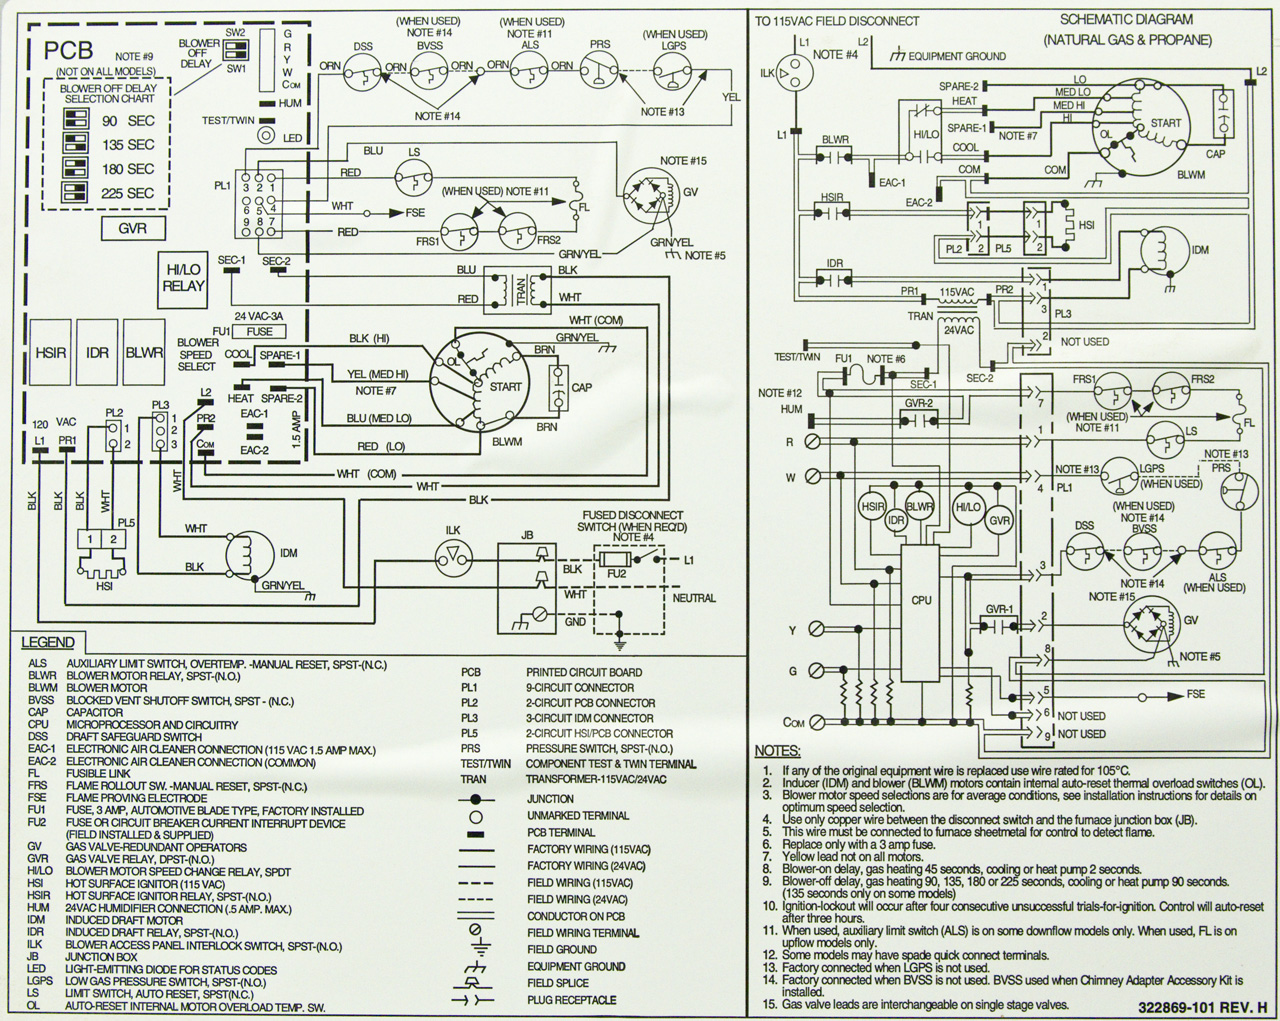 www.leahyguitars.com/Imagez/Two/Schematic58PAV090-... York Electric Furnace Wiring Diagram on